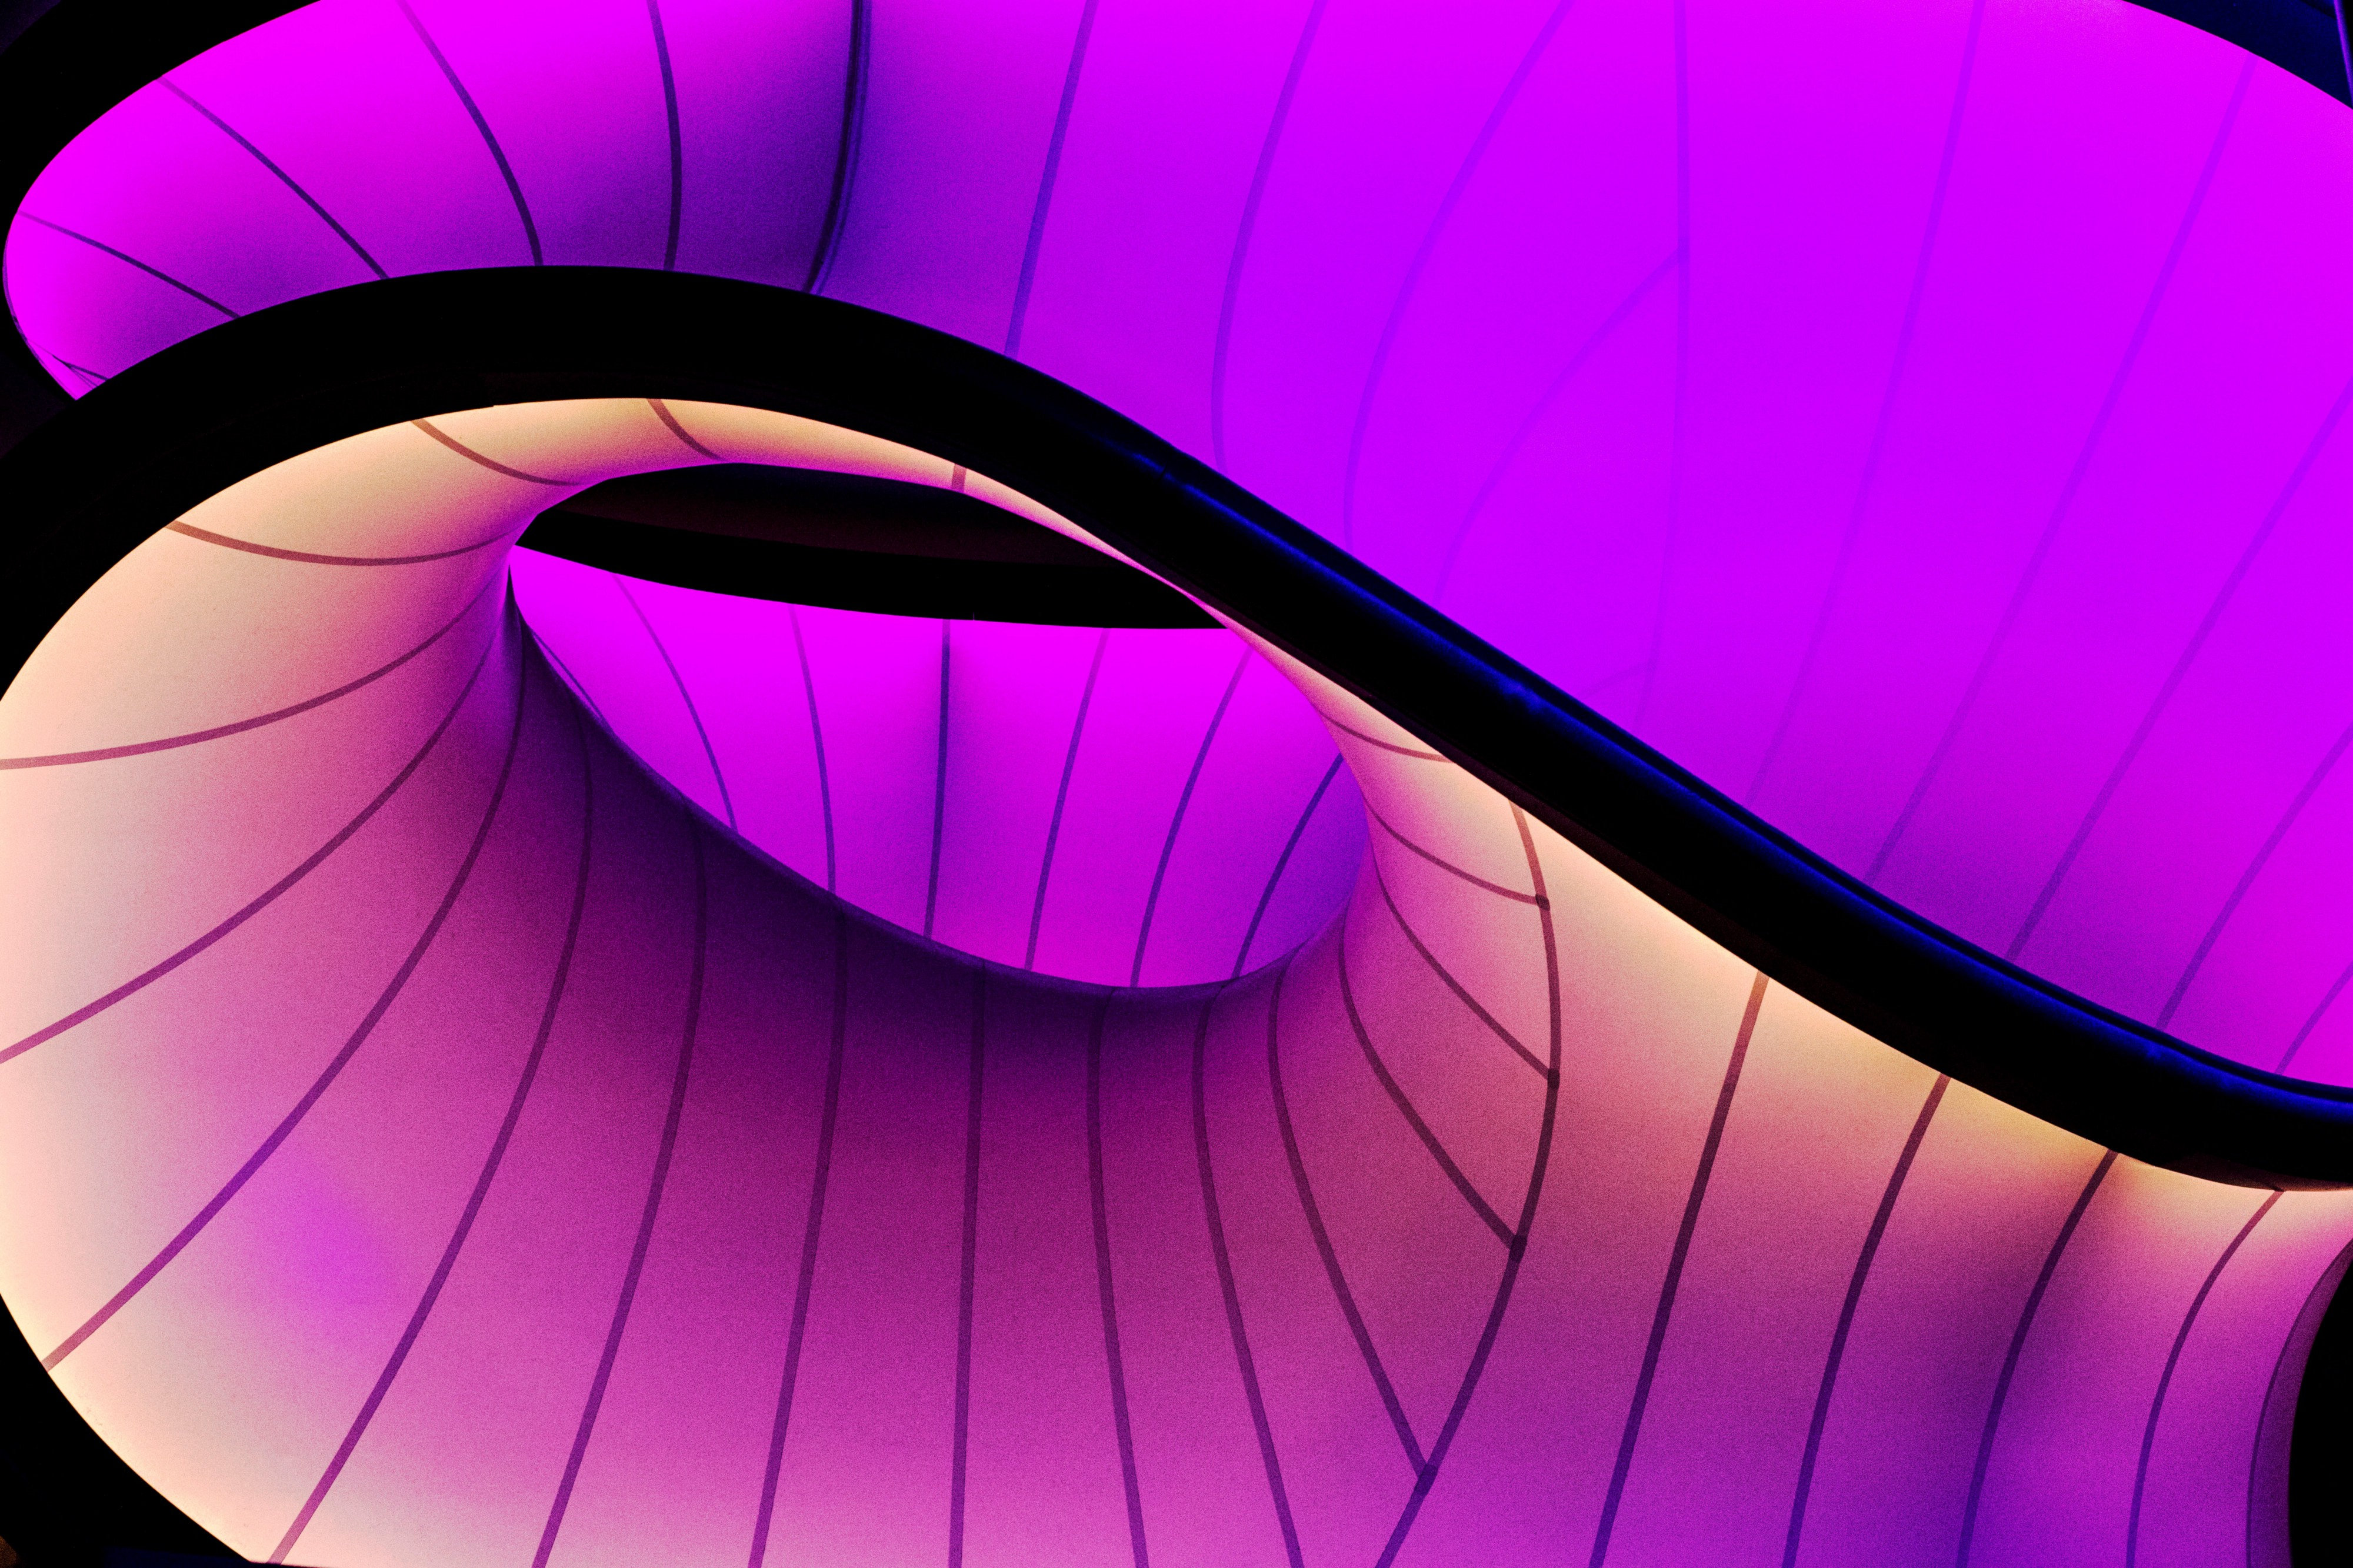 abstract image showing a black curve with pinks and yellows in the background